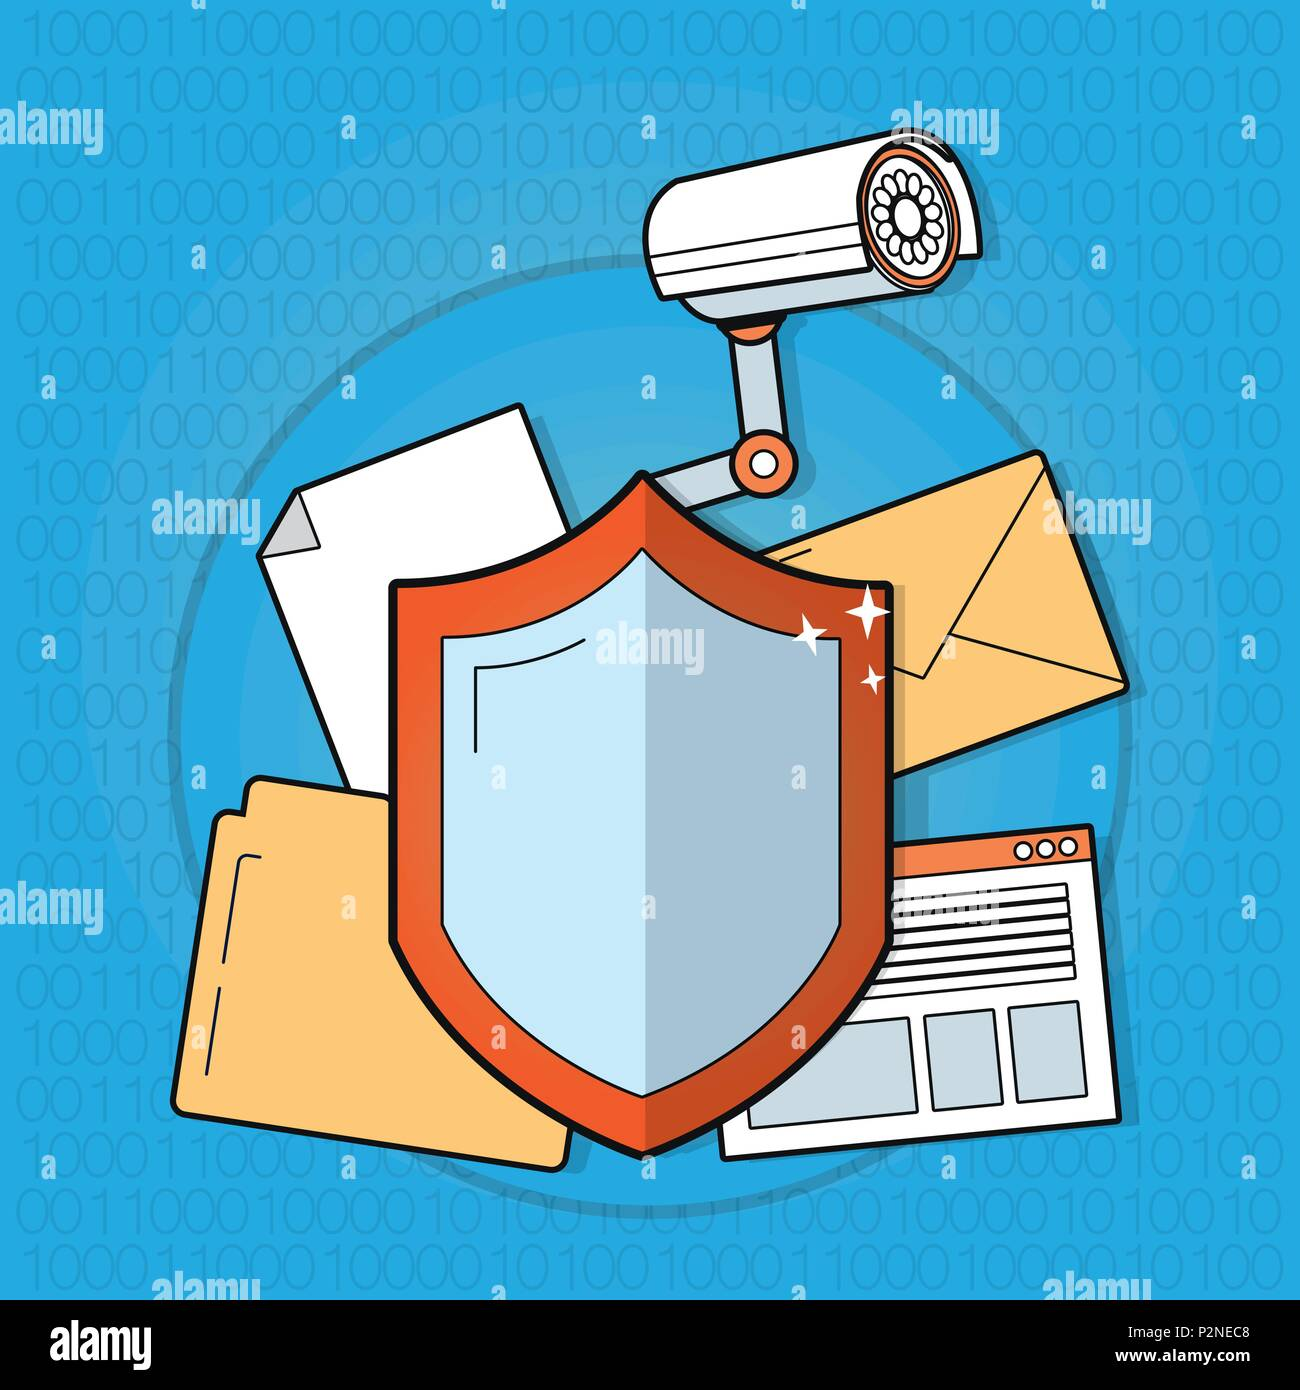 Cyber security technology - Stock Image